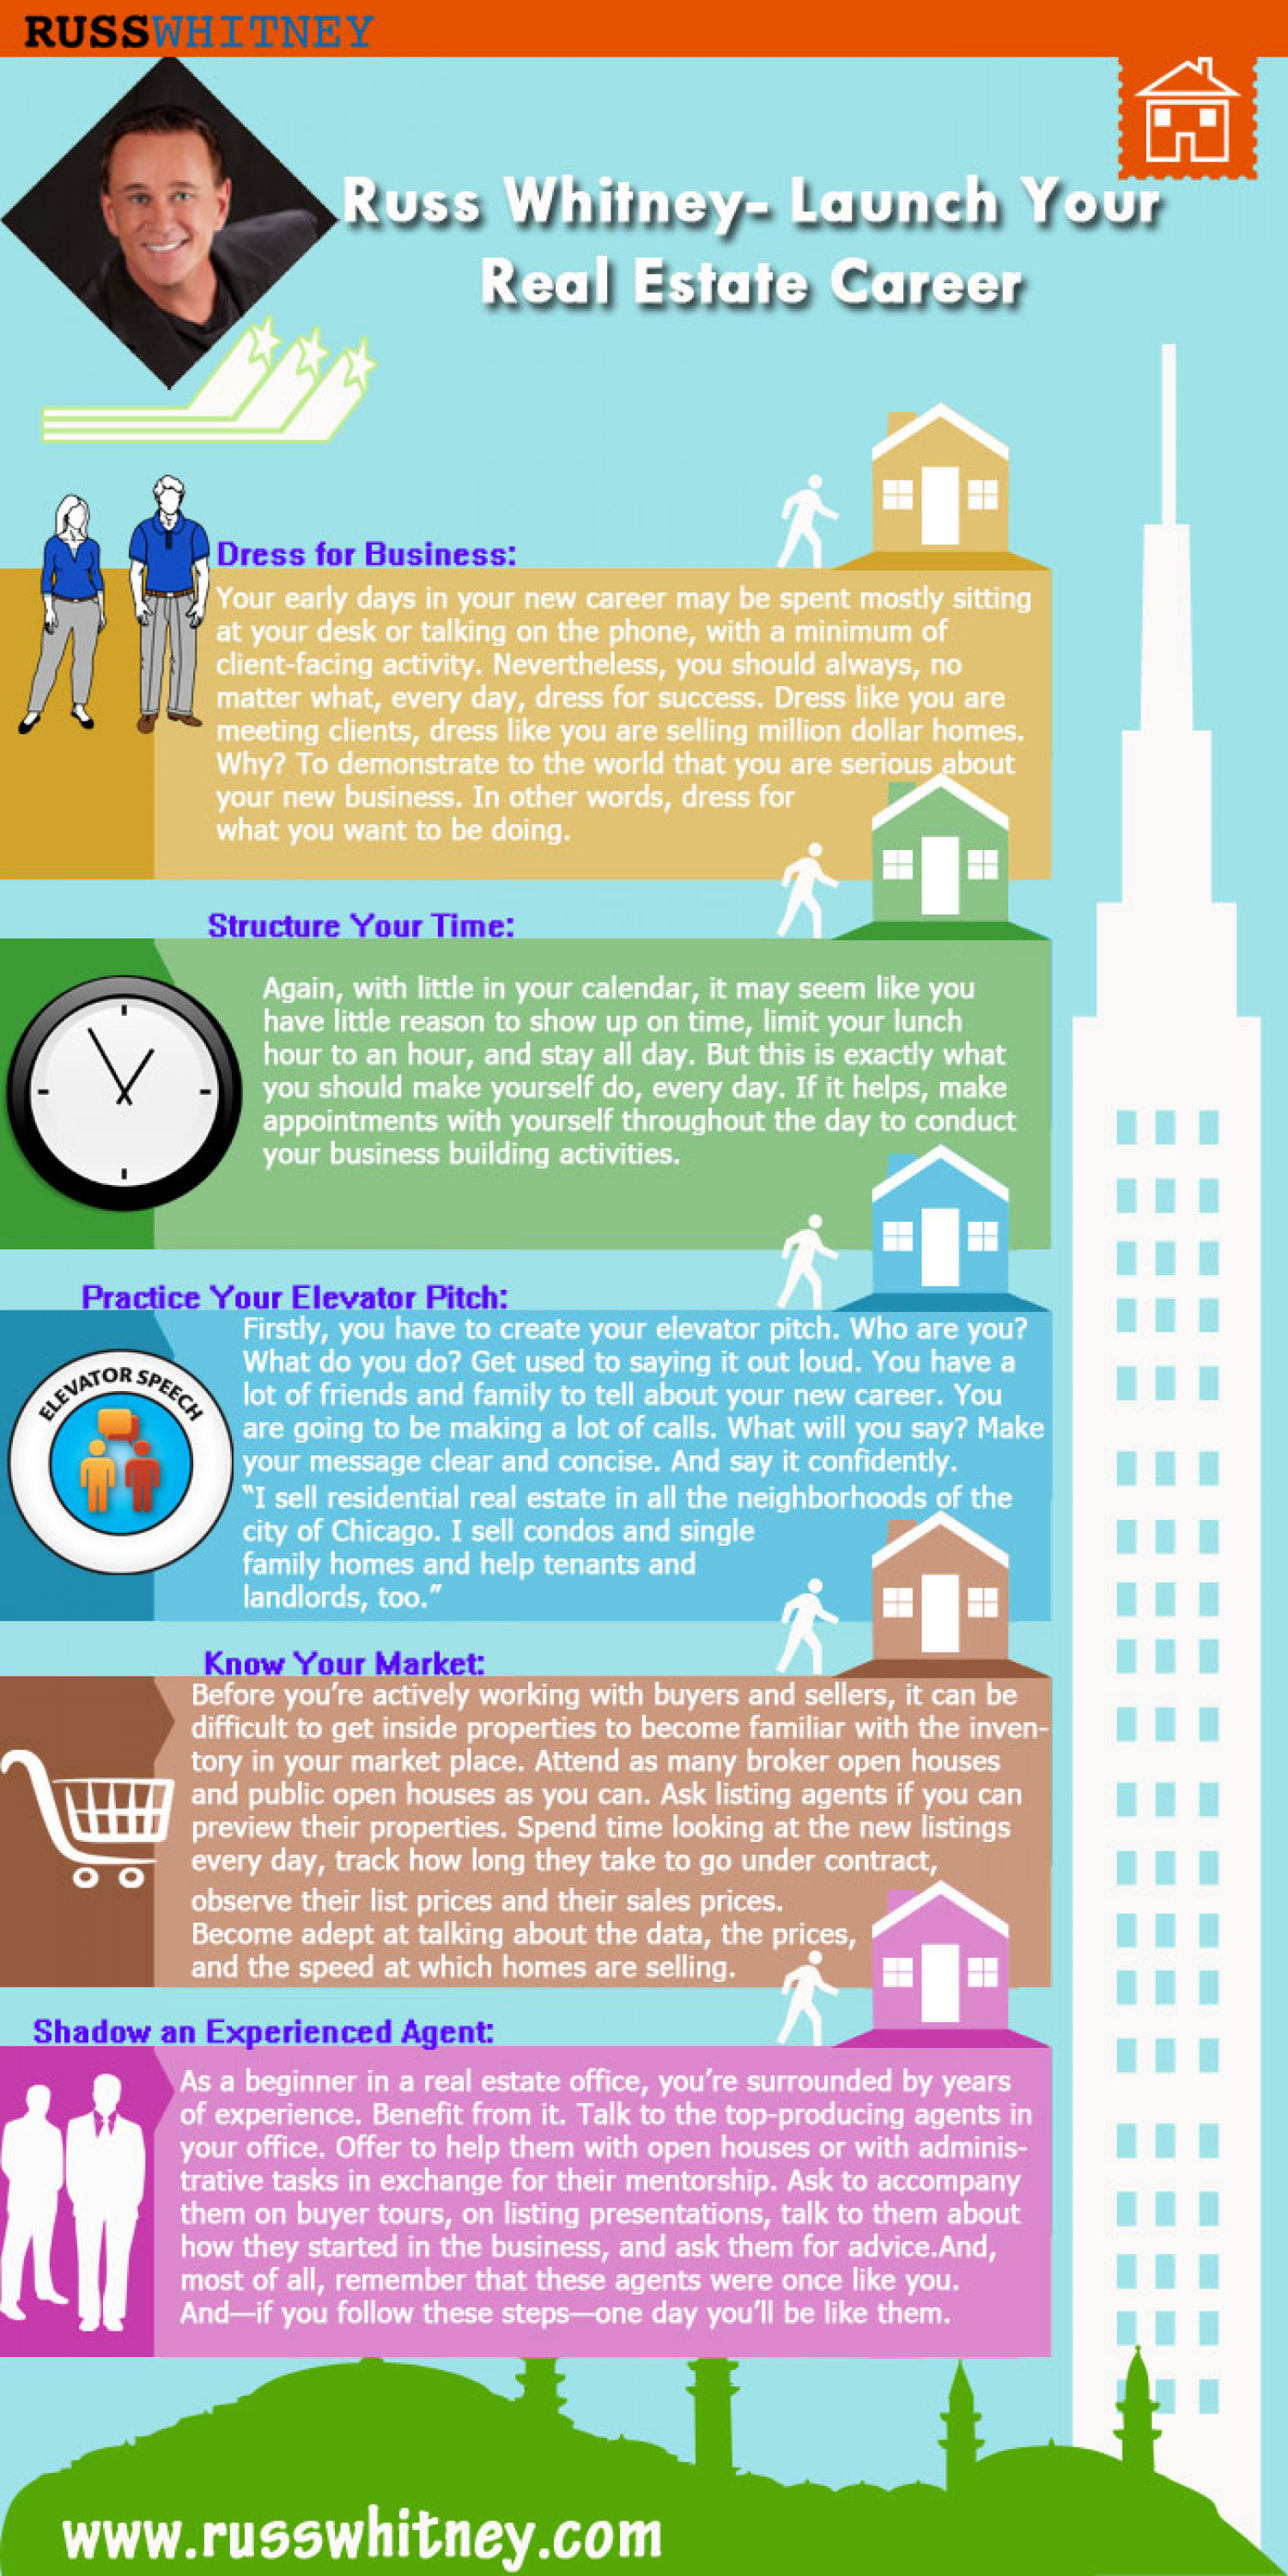 Russ Whitney-Launch Your Real Estate Career Infographic